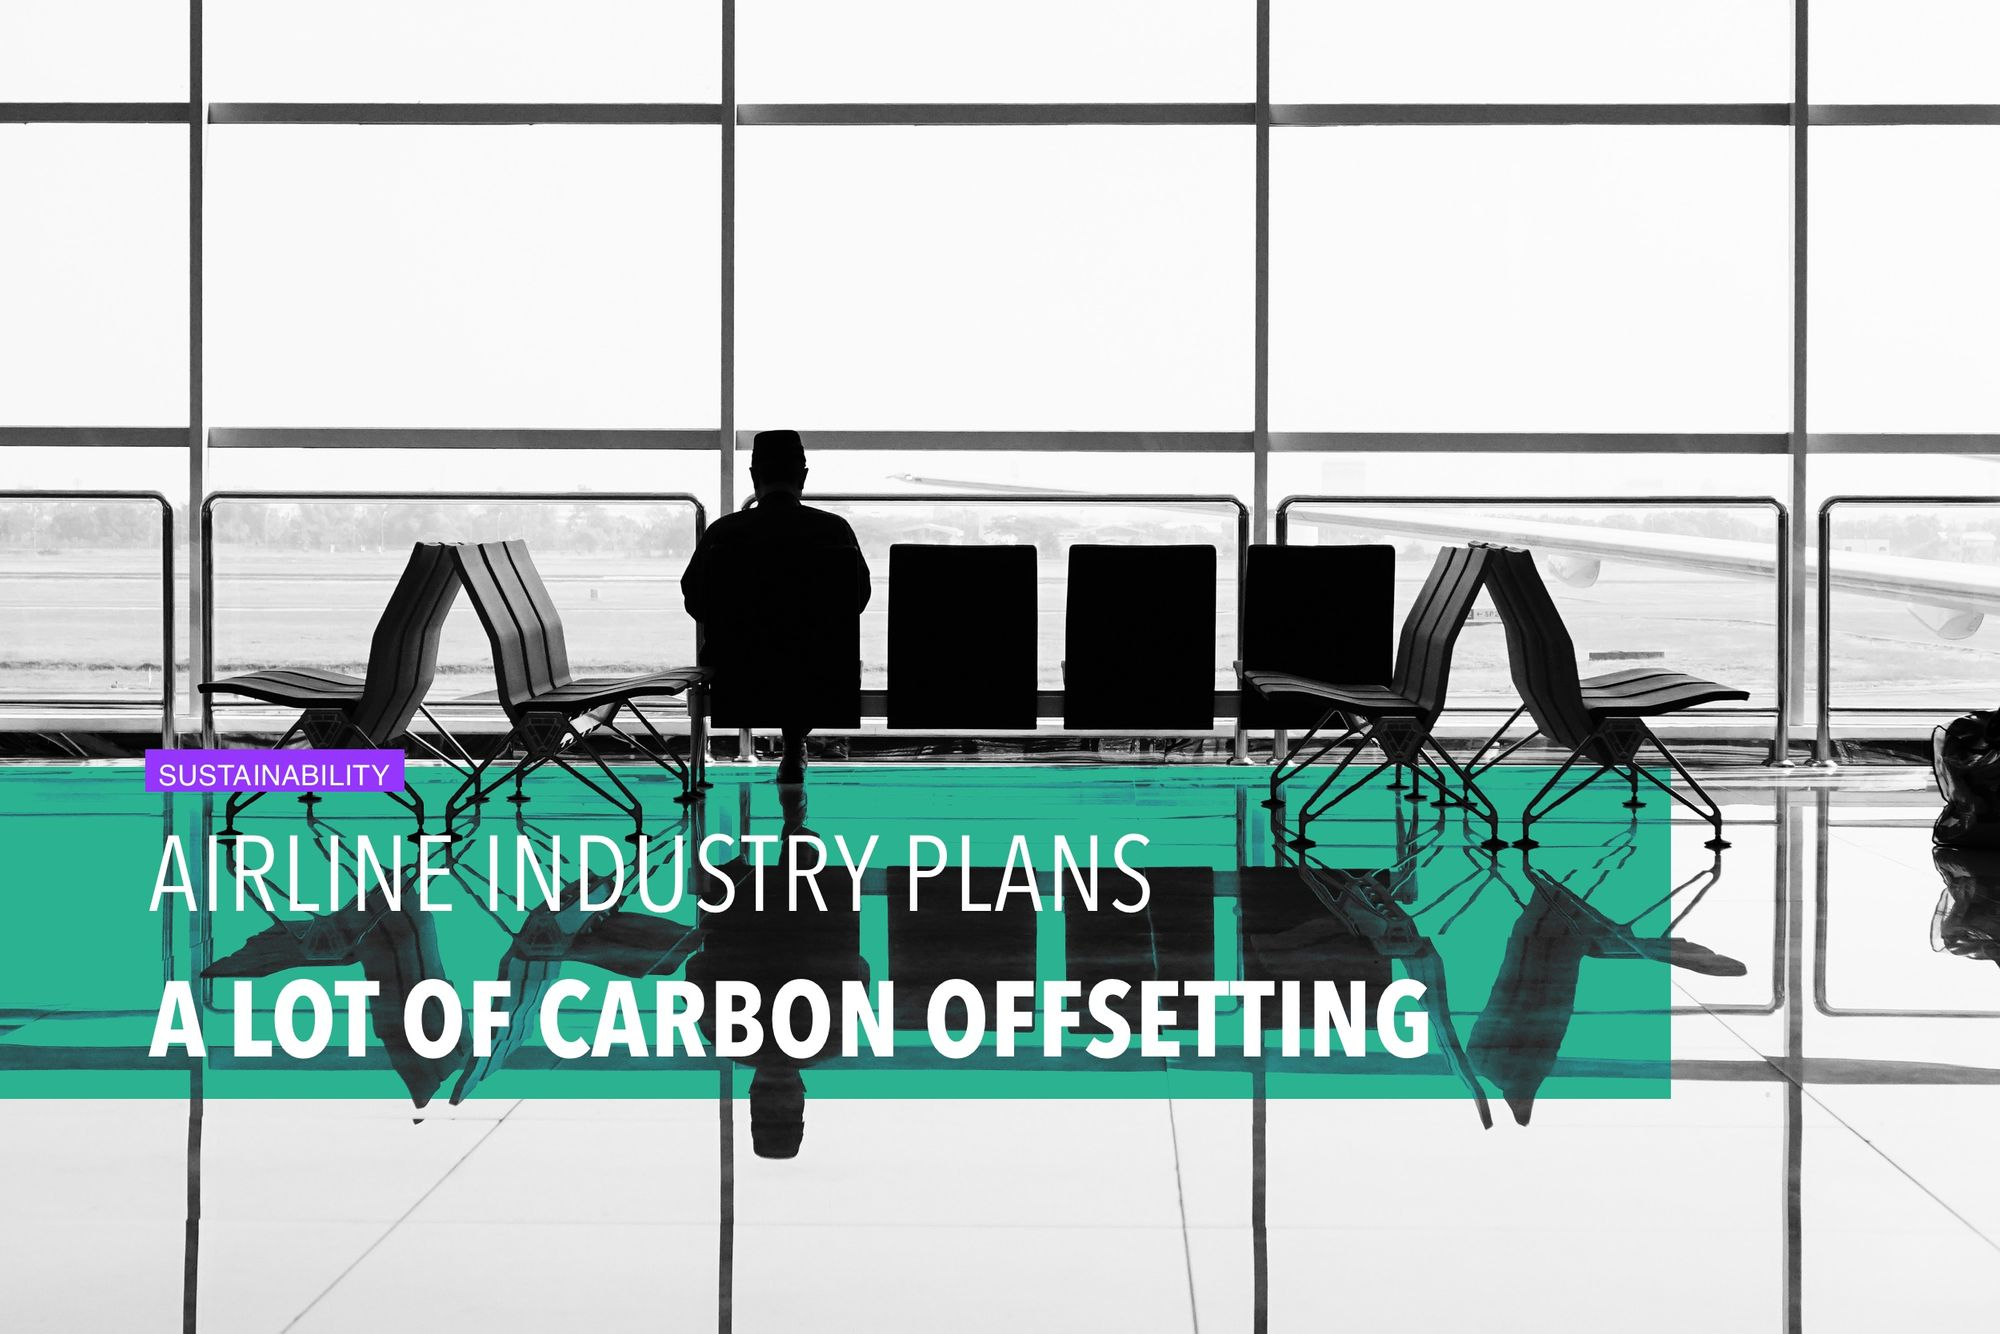 Airline industry plans a LOT of carbon offsetting